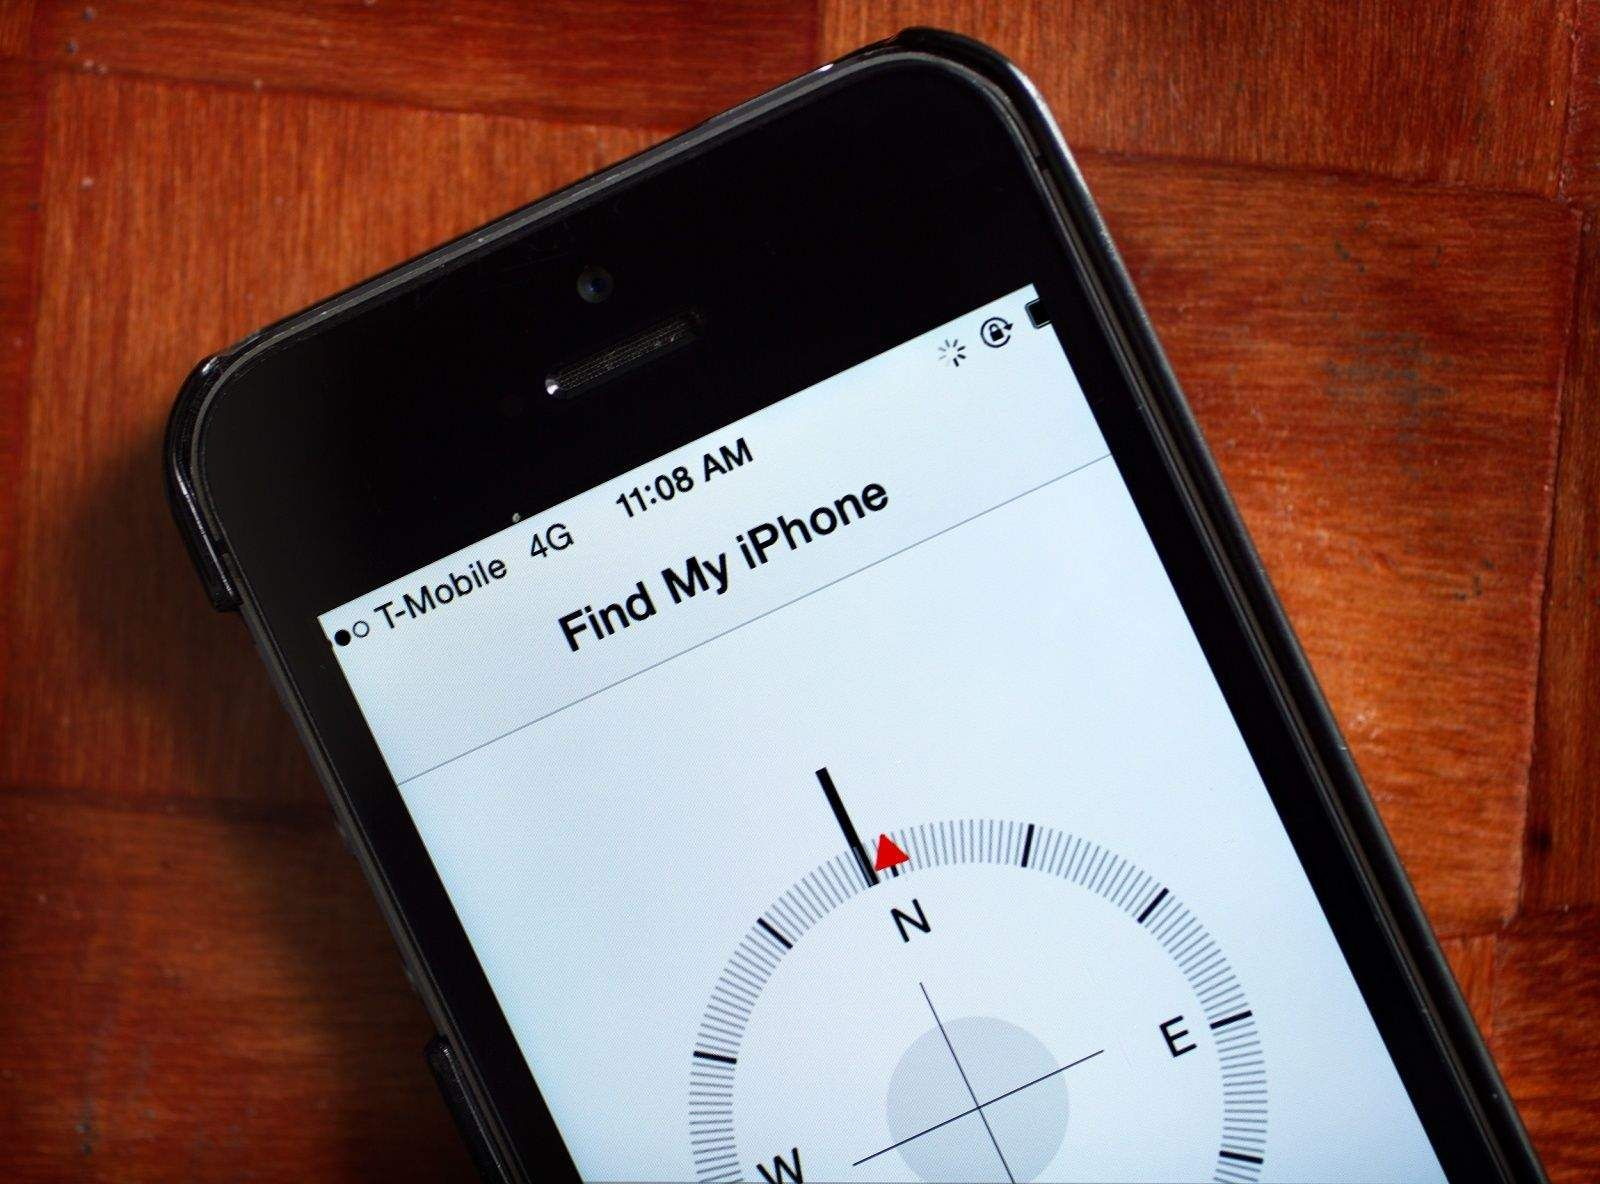 Find my iphone tracks down possible armed mugger iphone